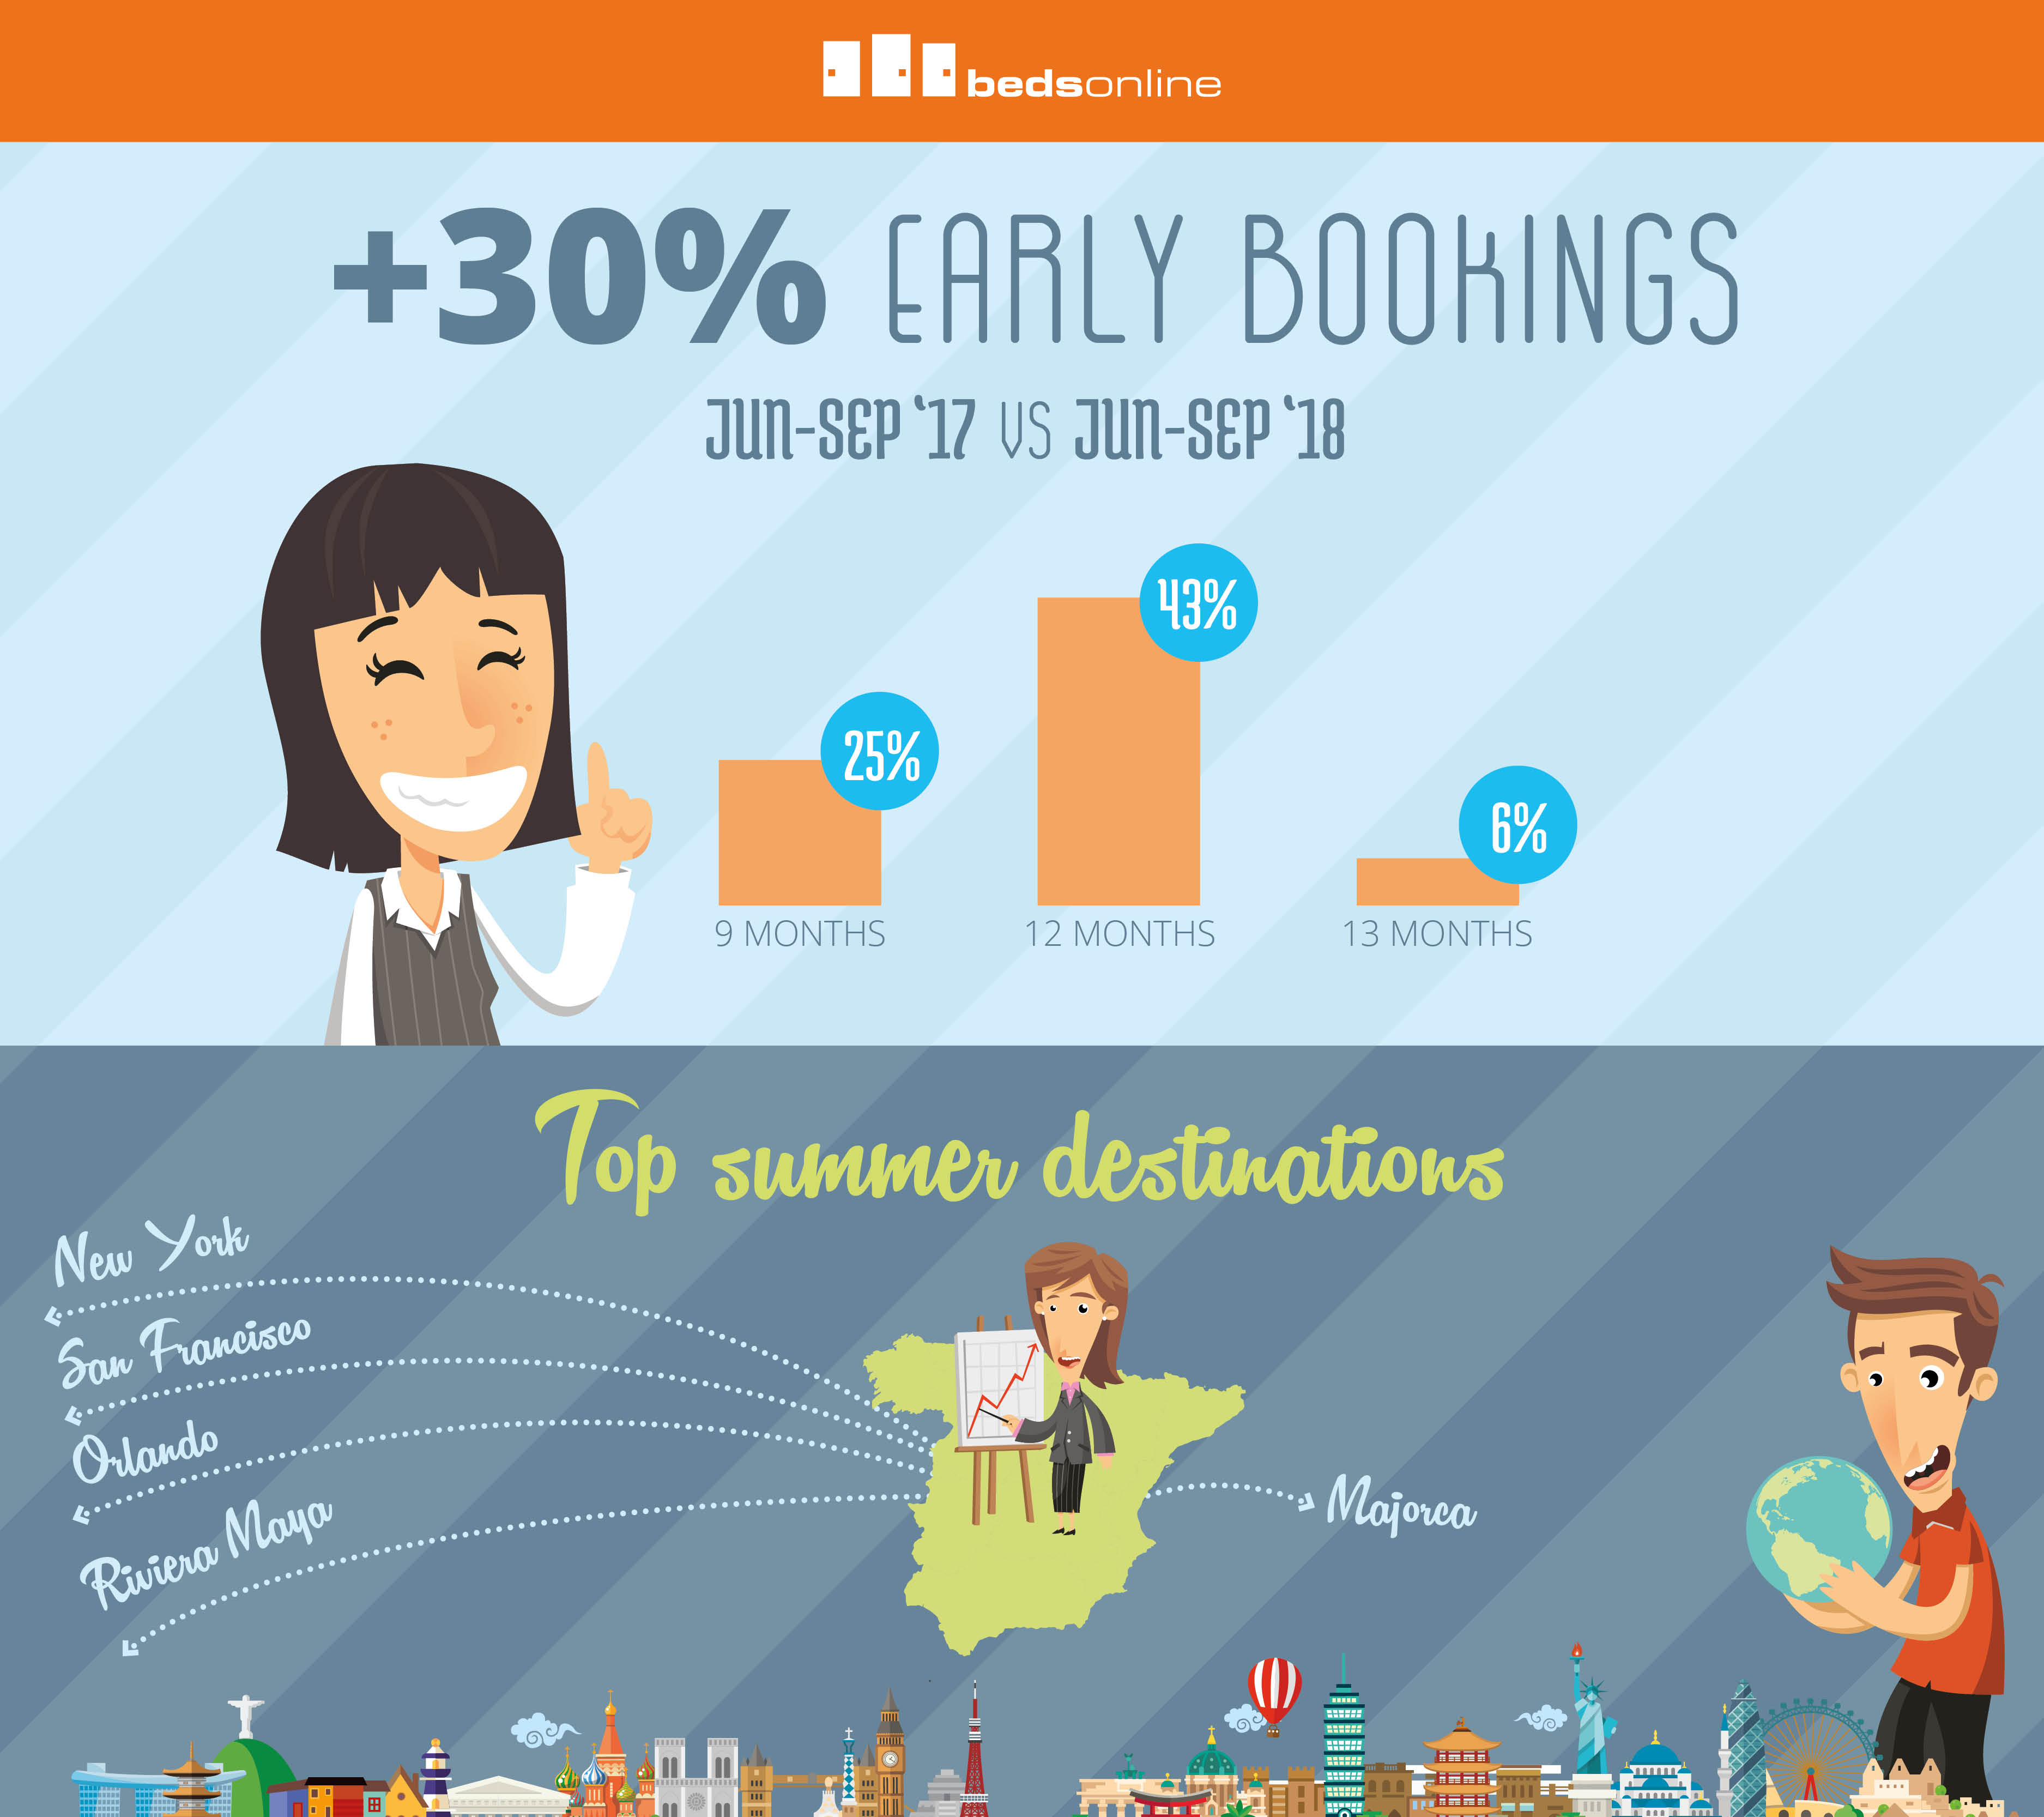 Spaniards increase early booking rate for summer holidays by 30%